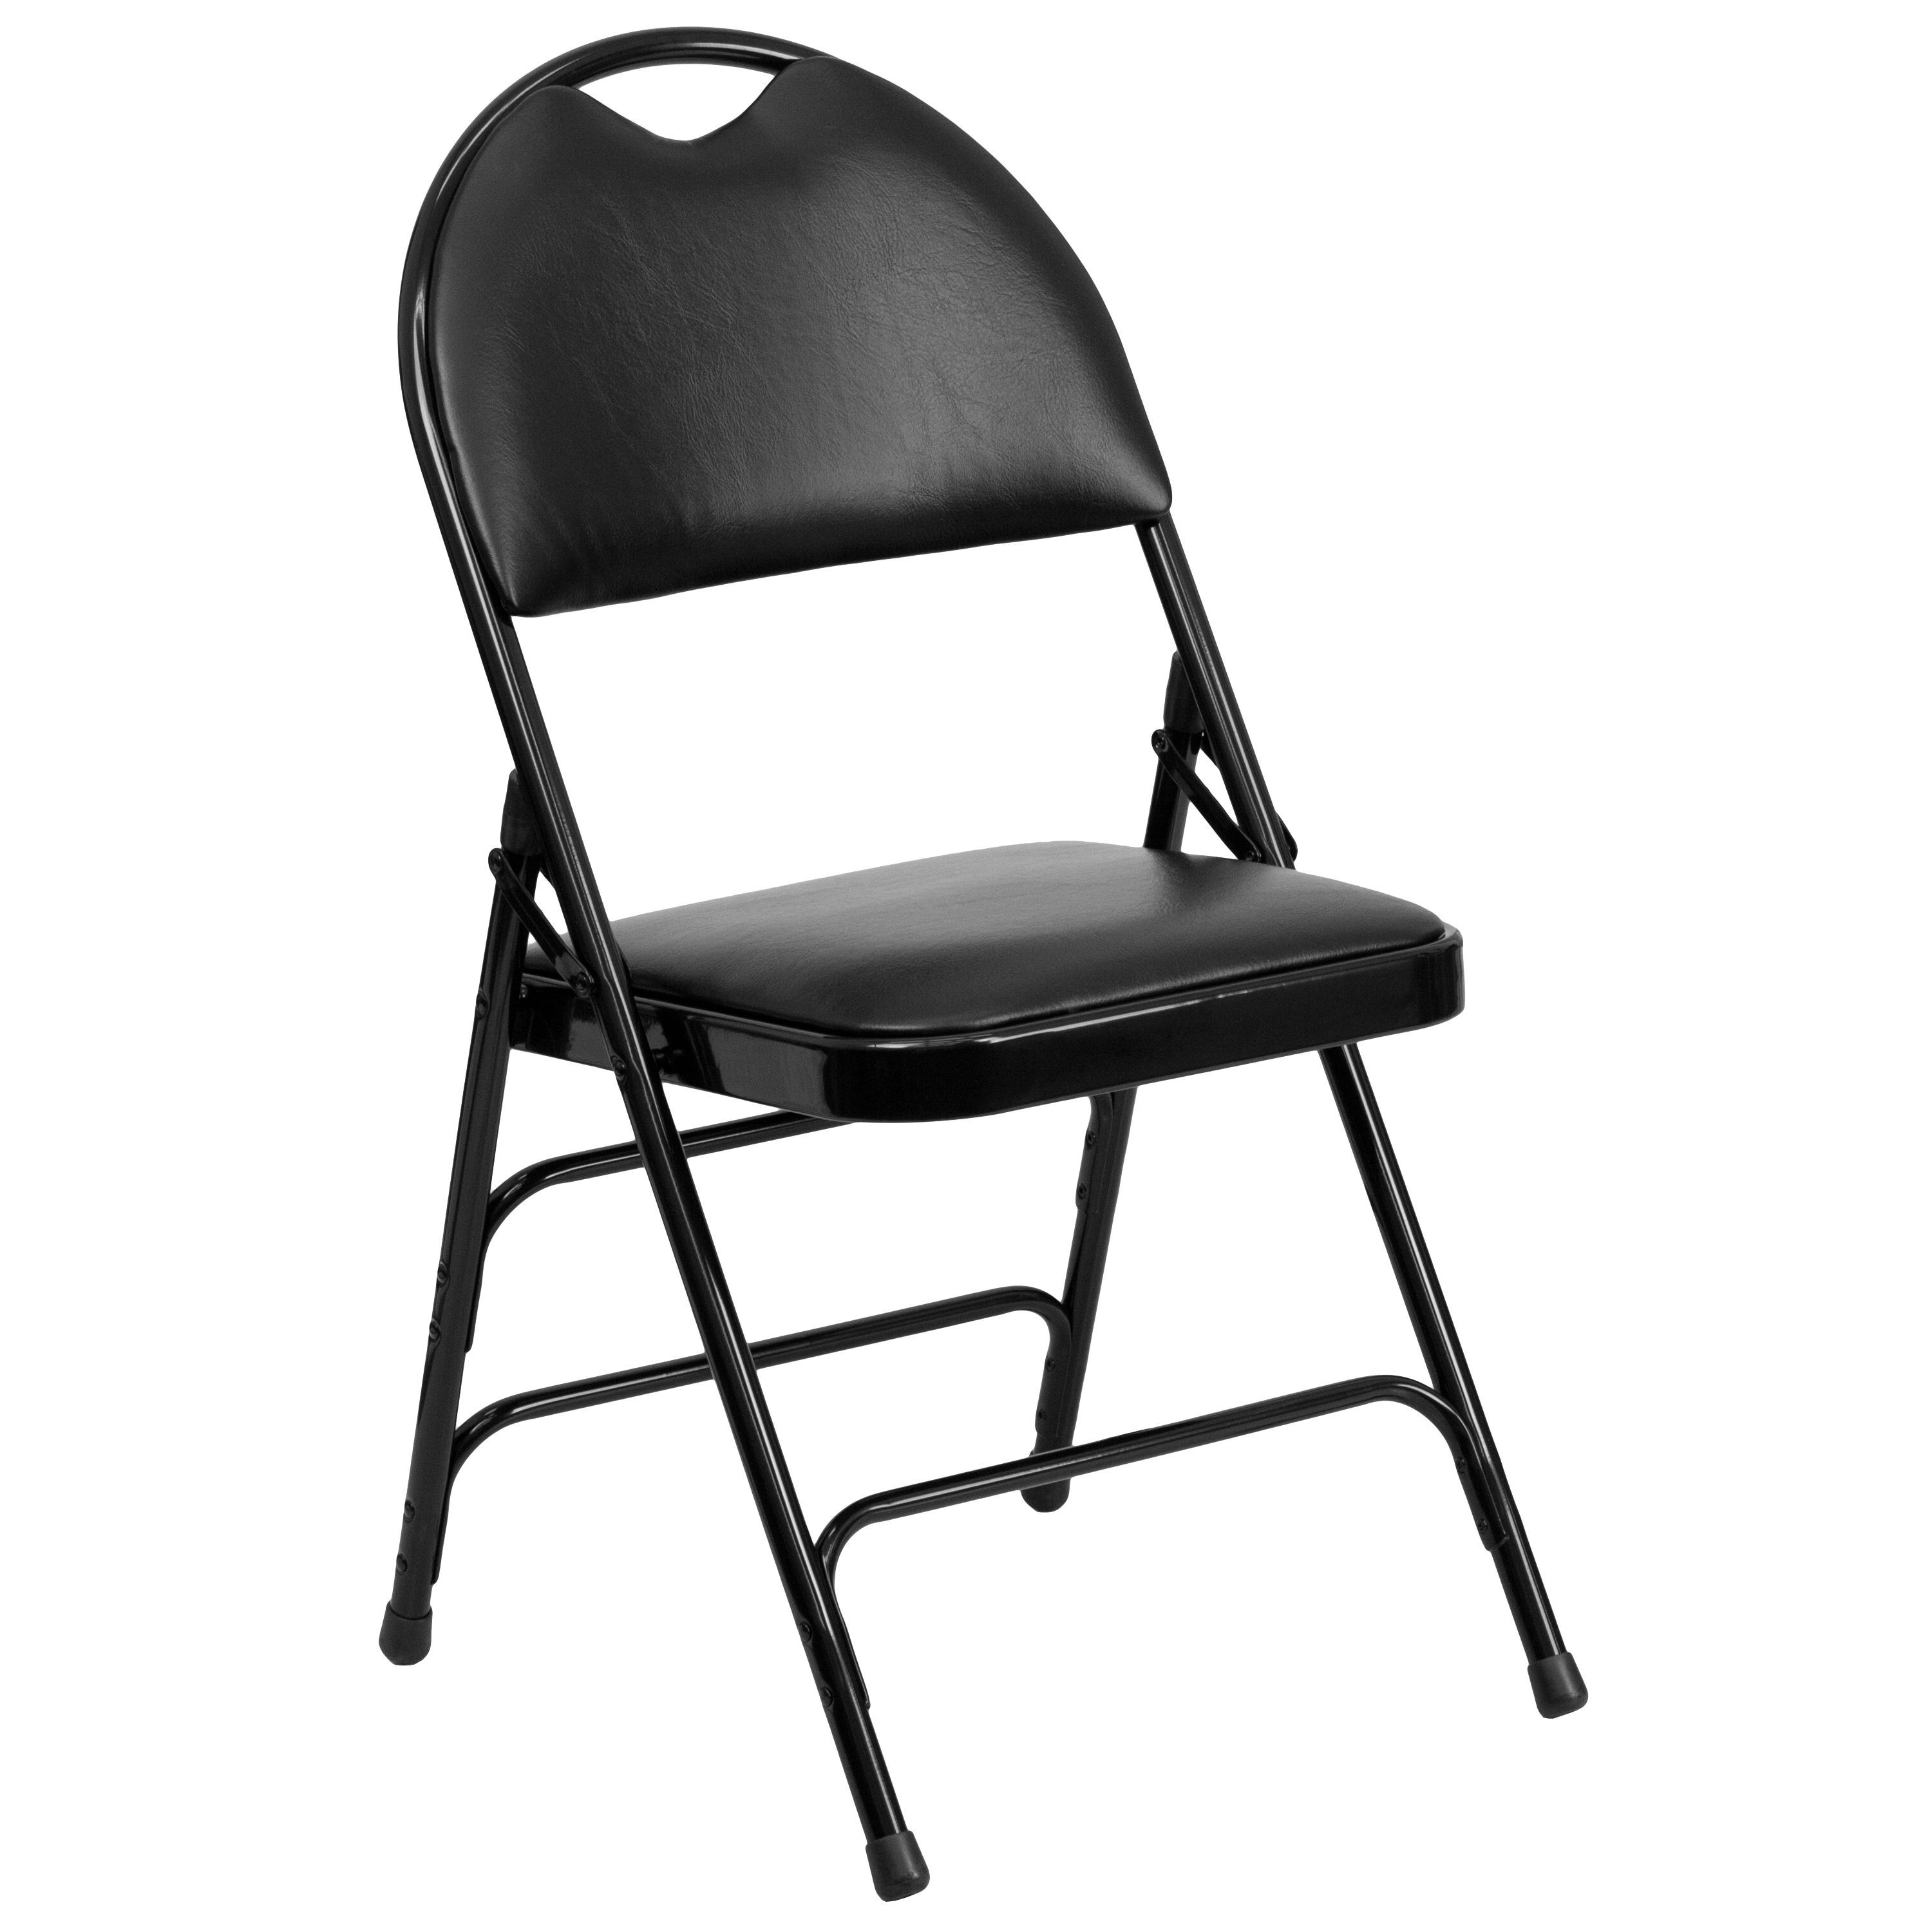 Holly Black Folding Chairs with Handle Grip Holly Black Folding